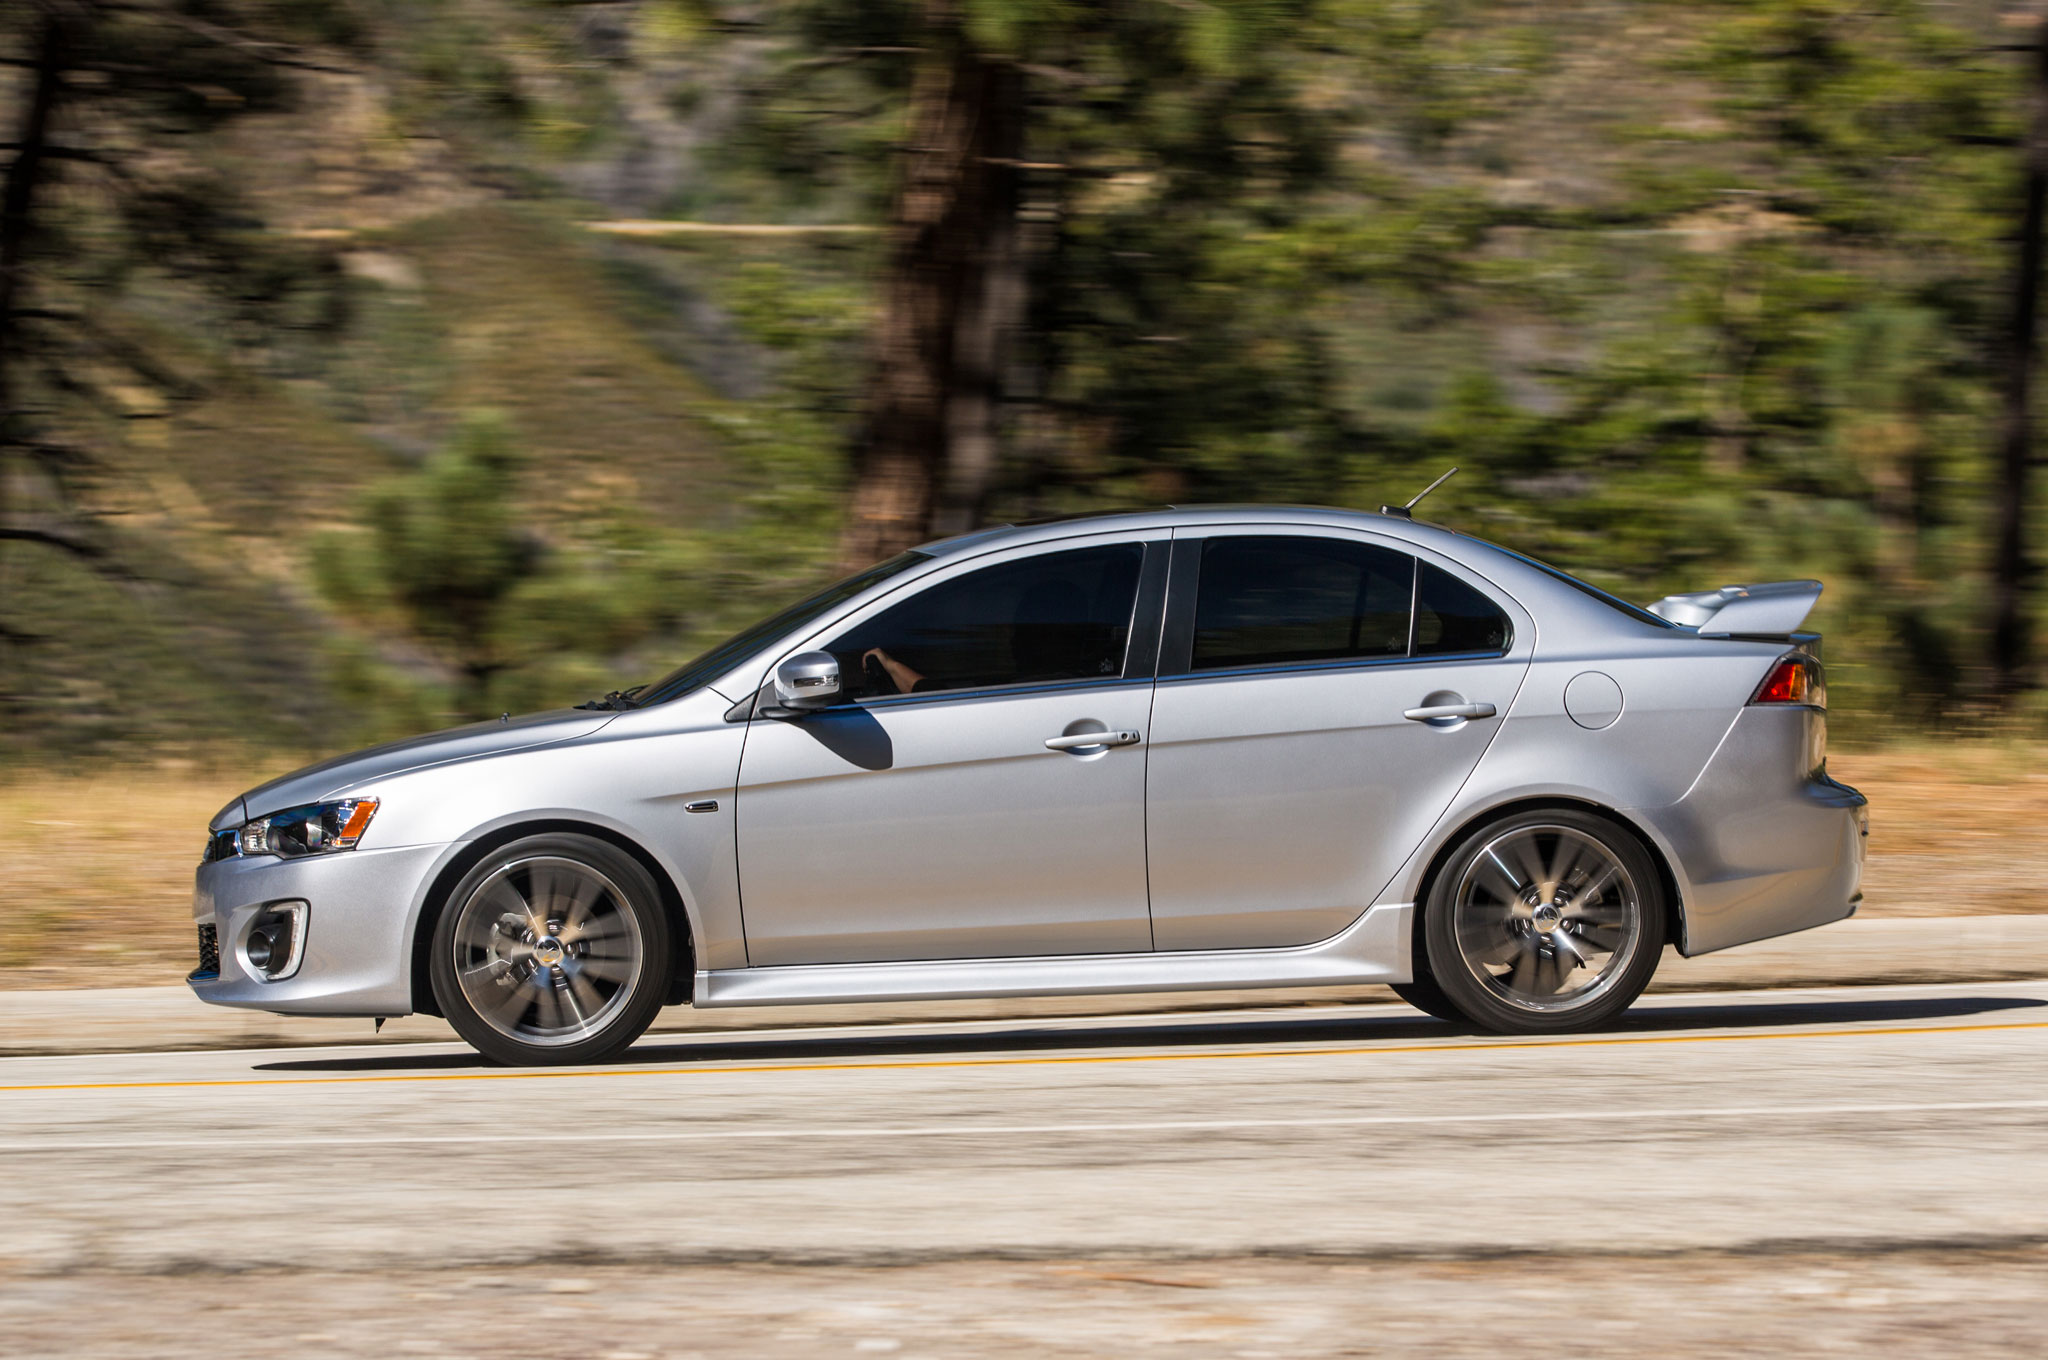 2016 Mitsubishi Lancer Gets New Look, Drops Ralliart Turbo